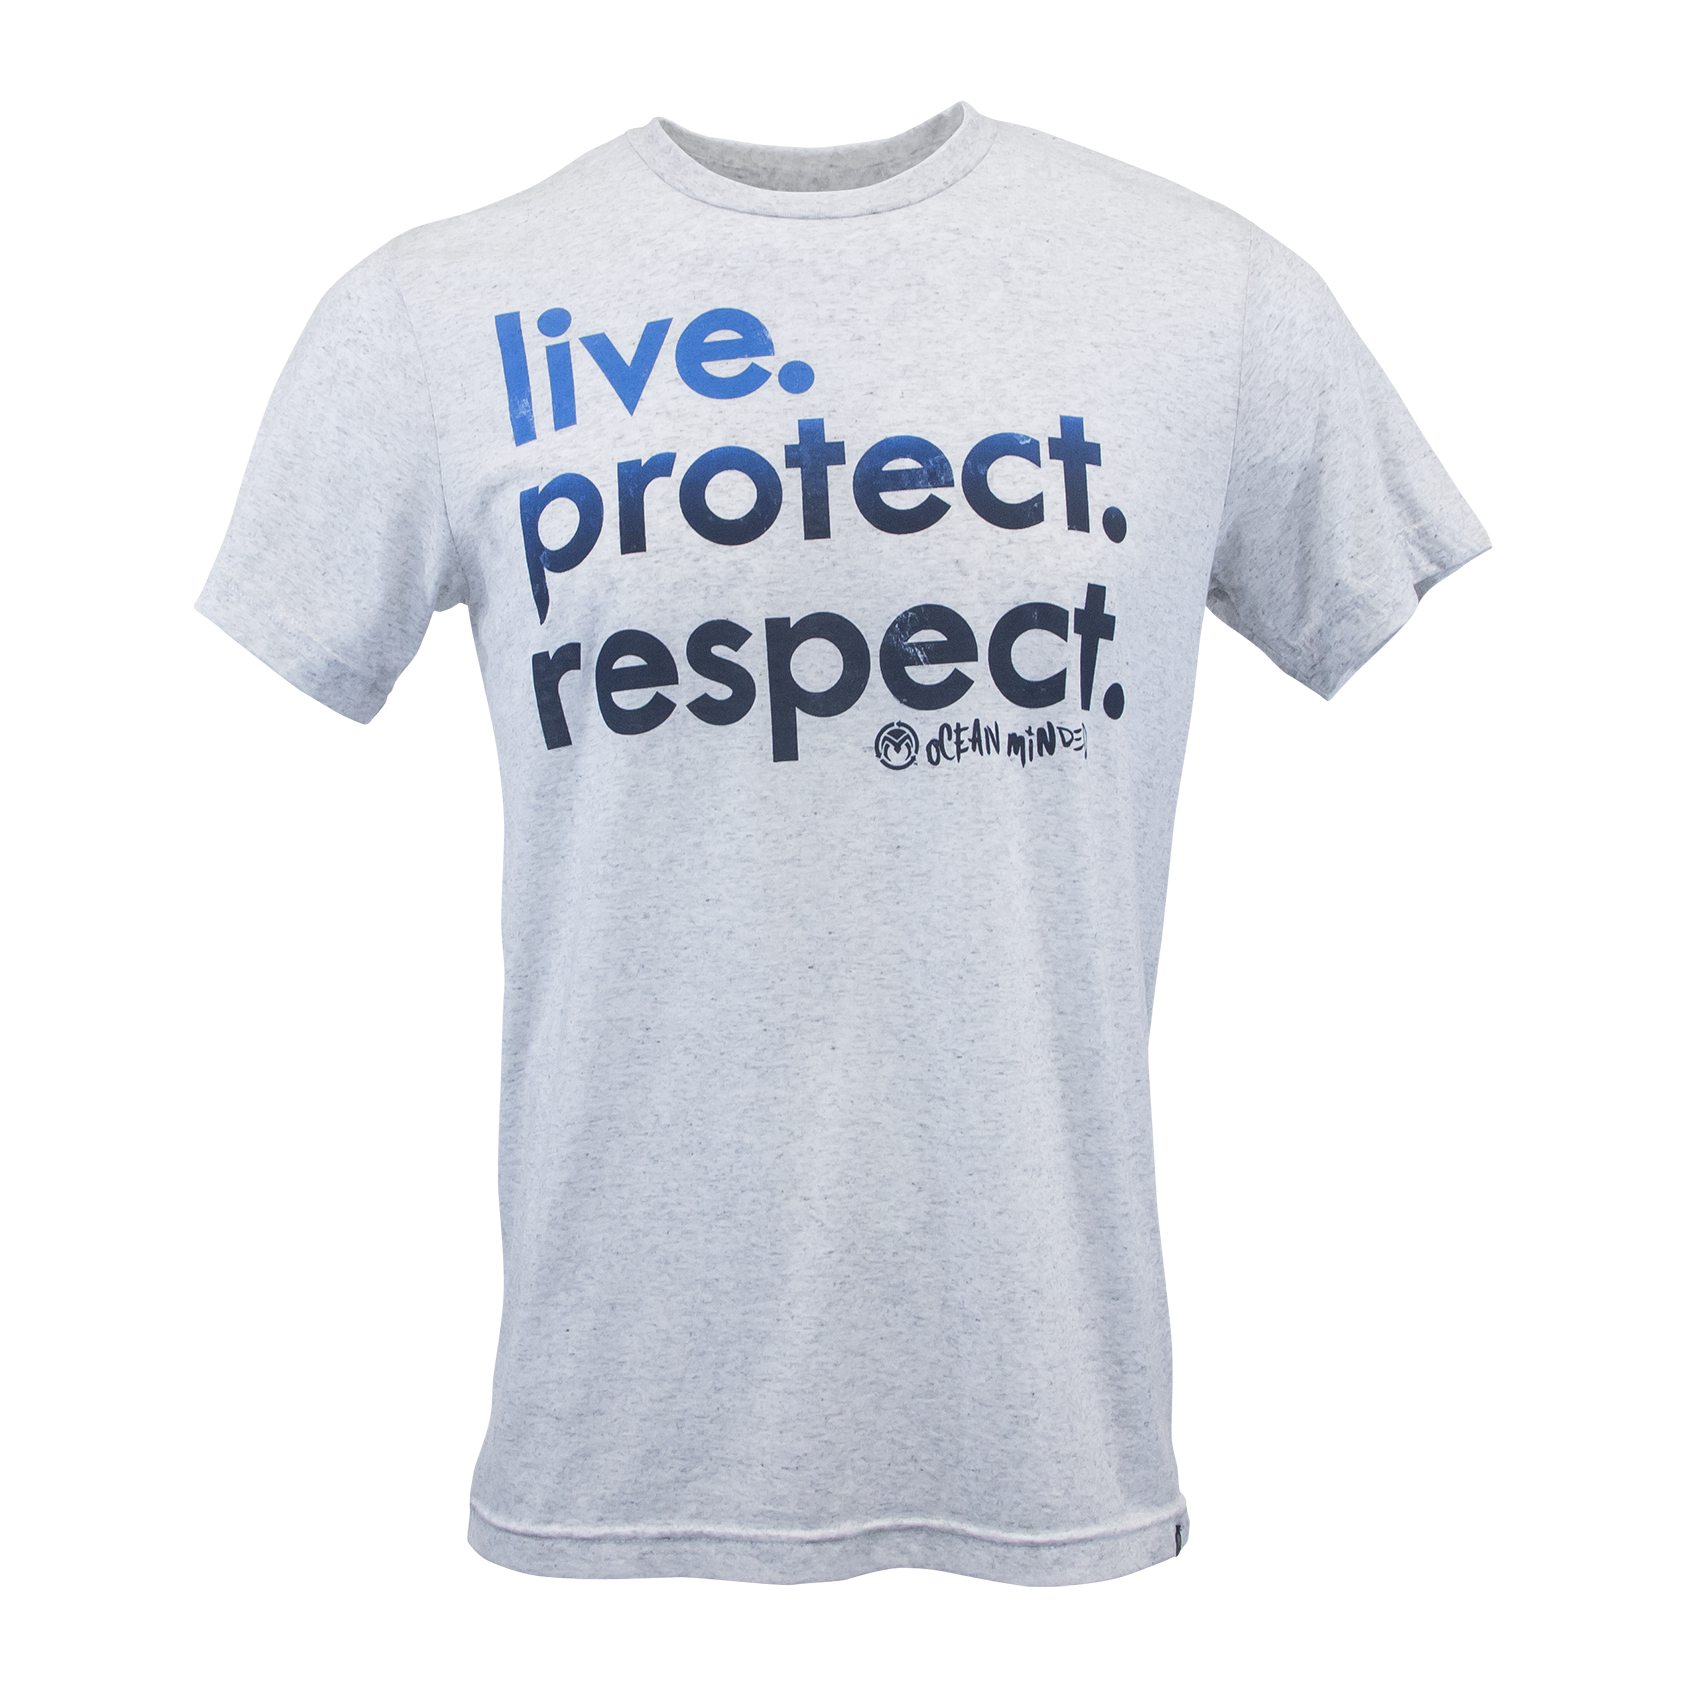 Live. Protect. Respect. - Men's Tee